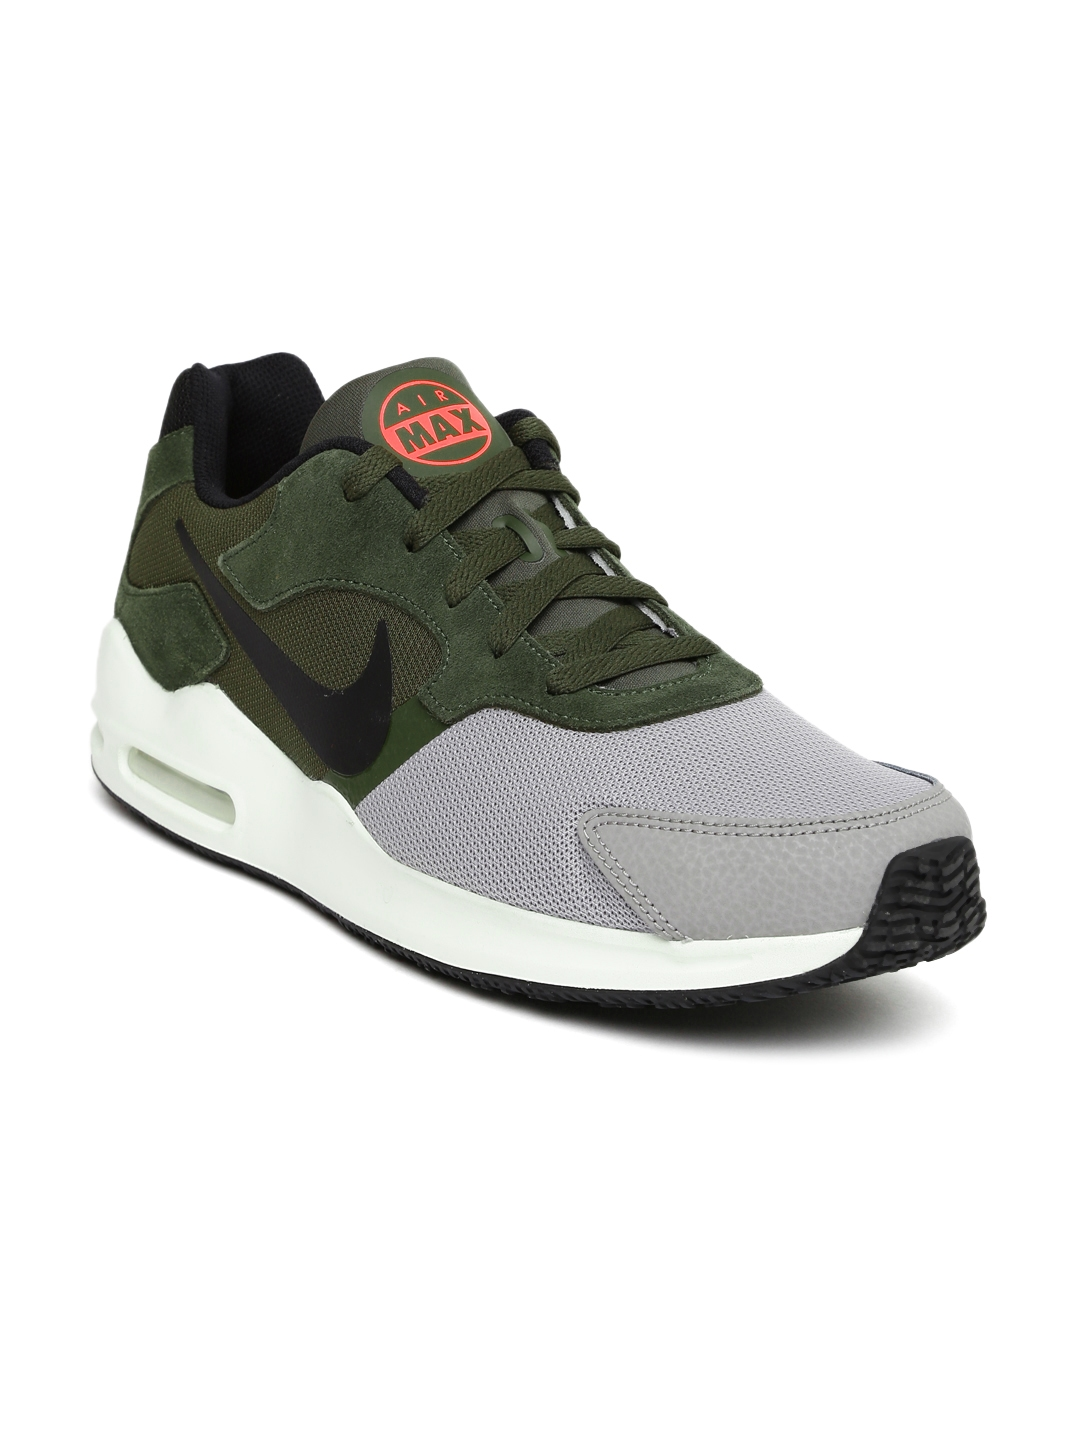 online store 8babc 17cb8 ... wholesale nike men grey olive green air max guile sneakers 5475f b8fbc